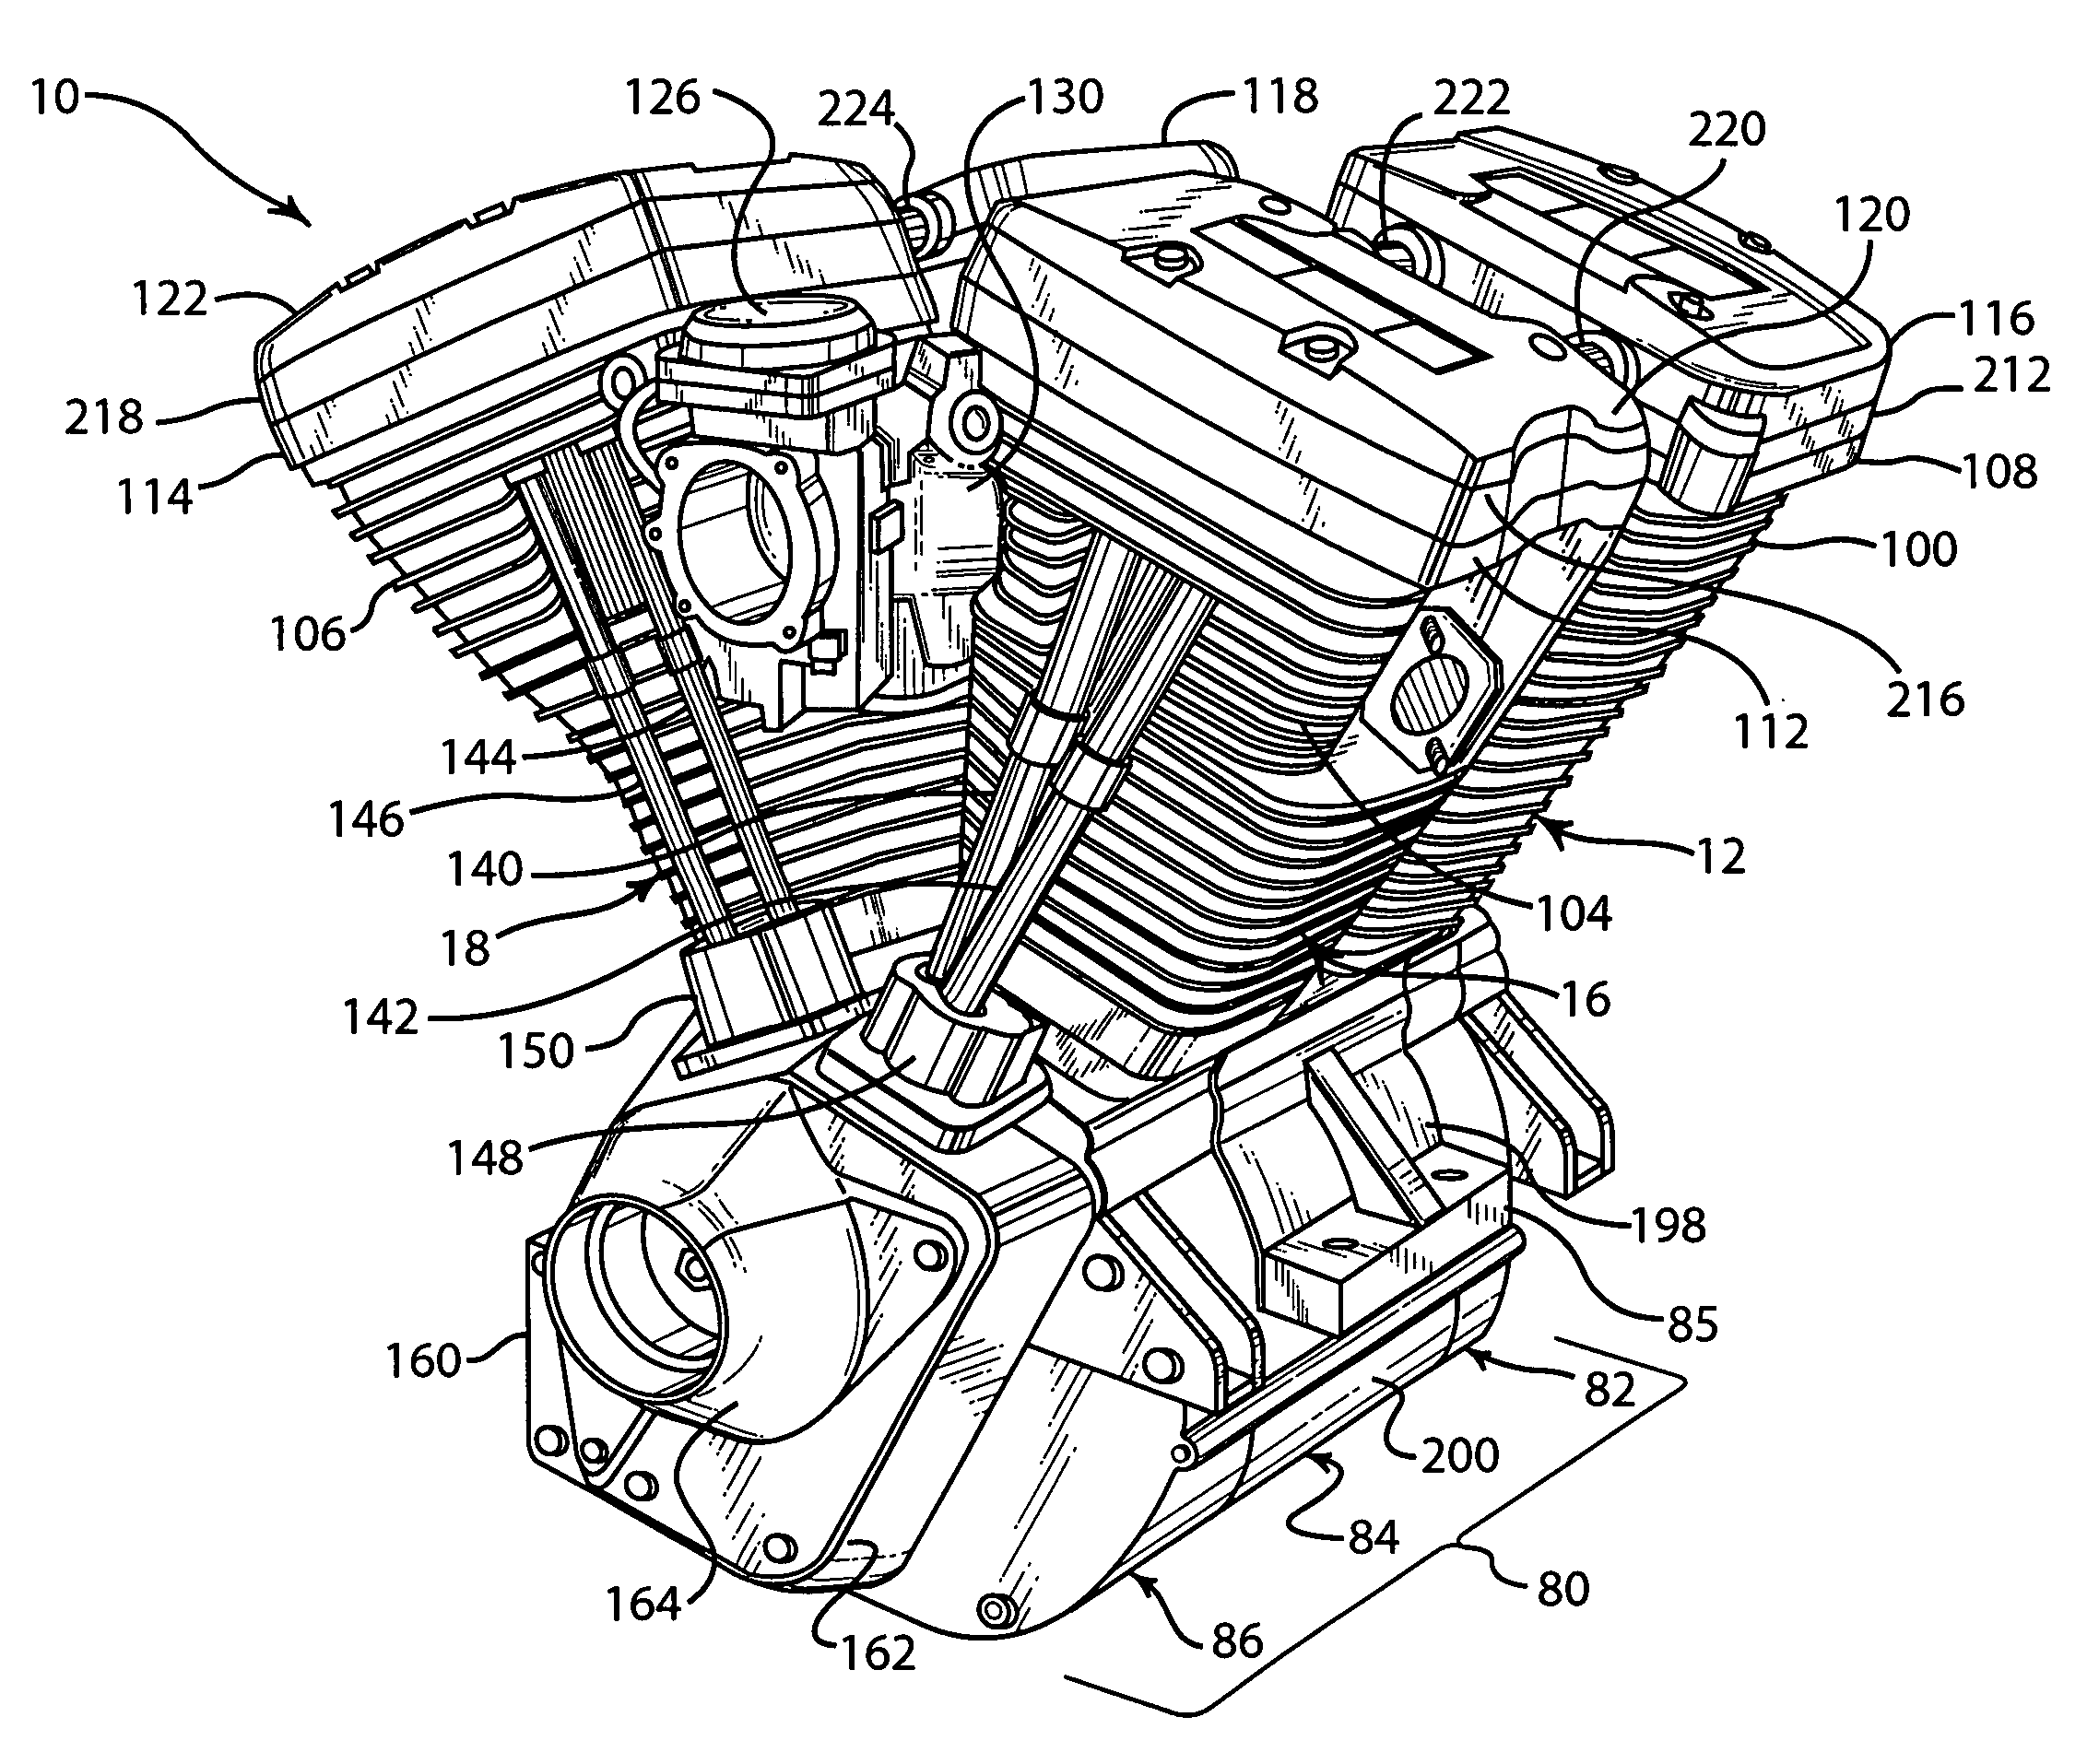 2277x1914 harley v twin engine diagram patent drawing recent photoshots so